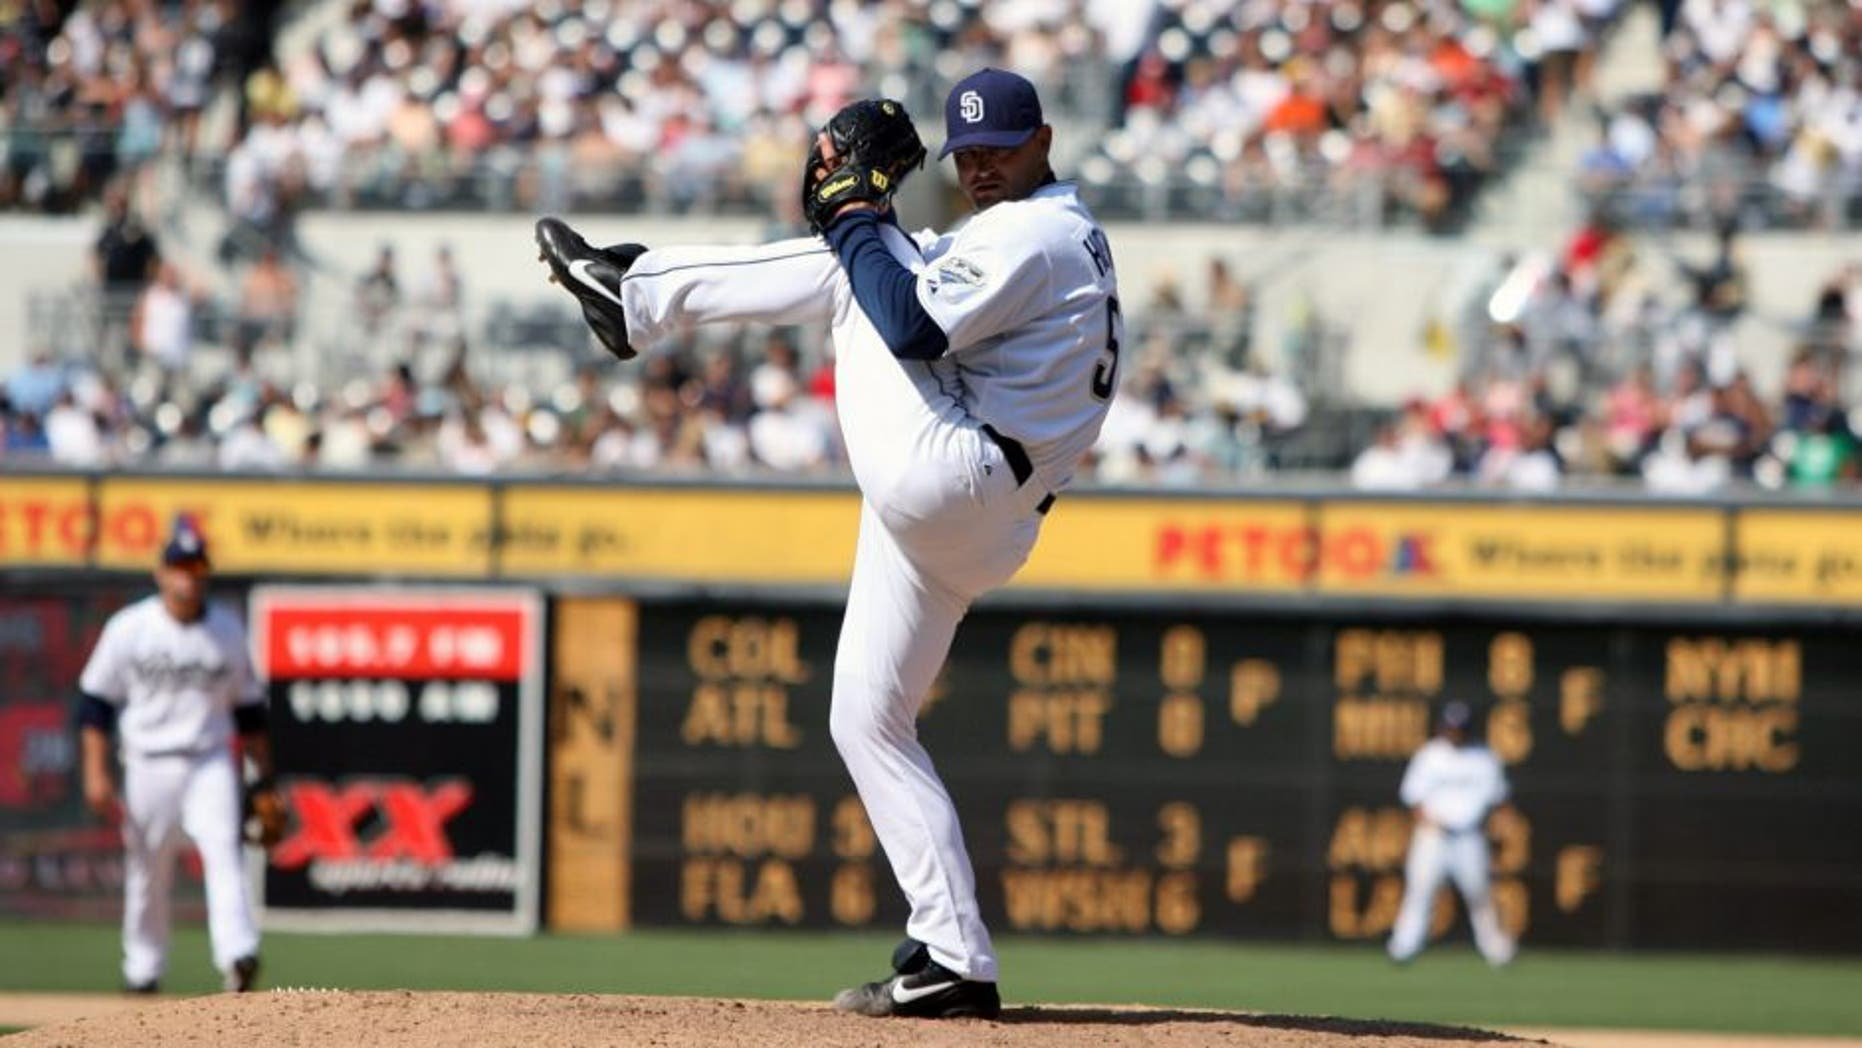 SAN DIEGO - AUGUST 5: Trevor Hoffman of the San Diego Padres pitches during the game against the San Francisco Giants at Petco Park in San Diego, California on August 5, 2007. The Padres defeated the Giants 5-4. (Photo by Rich Pilling/MLB Photos via Getty Images)